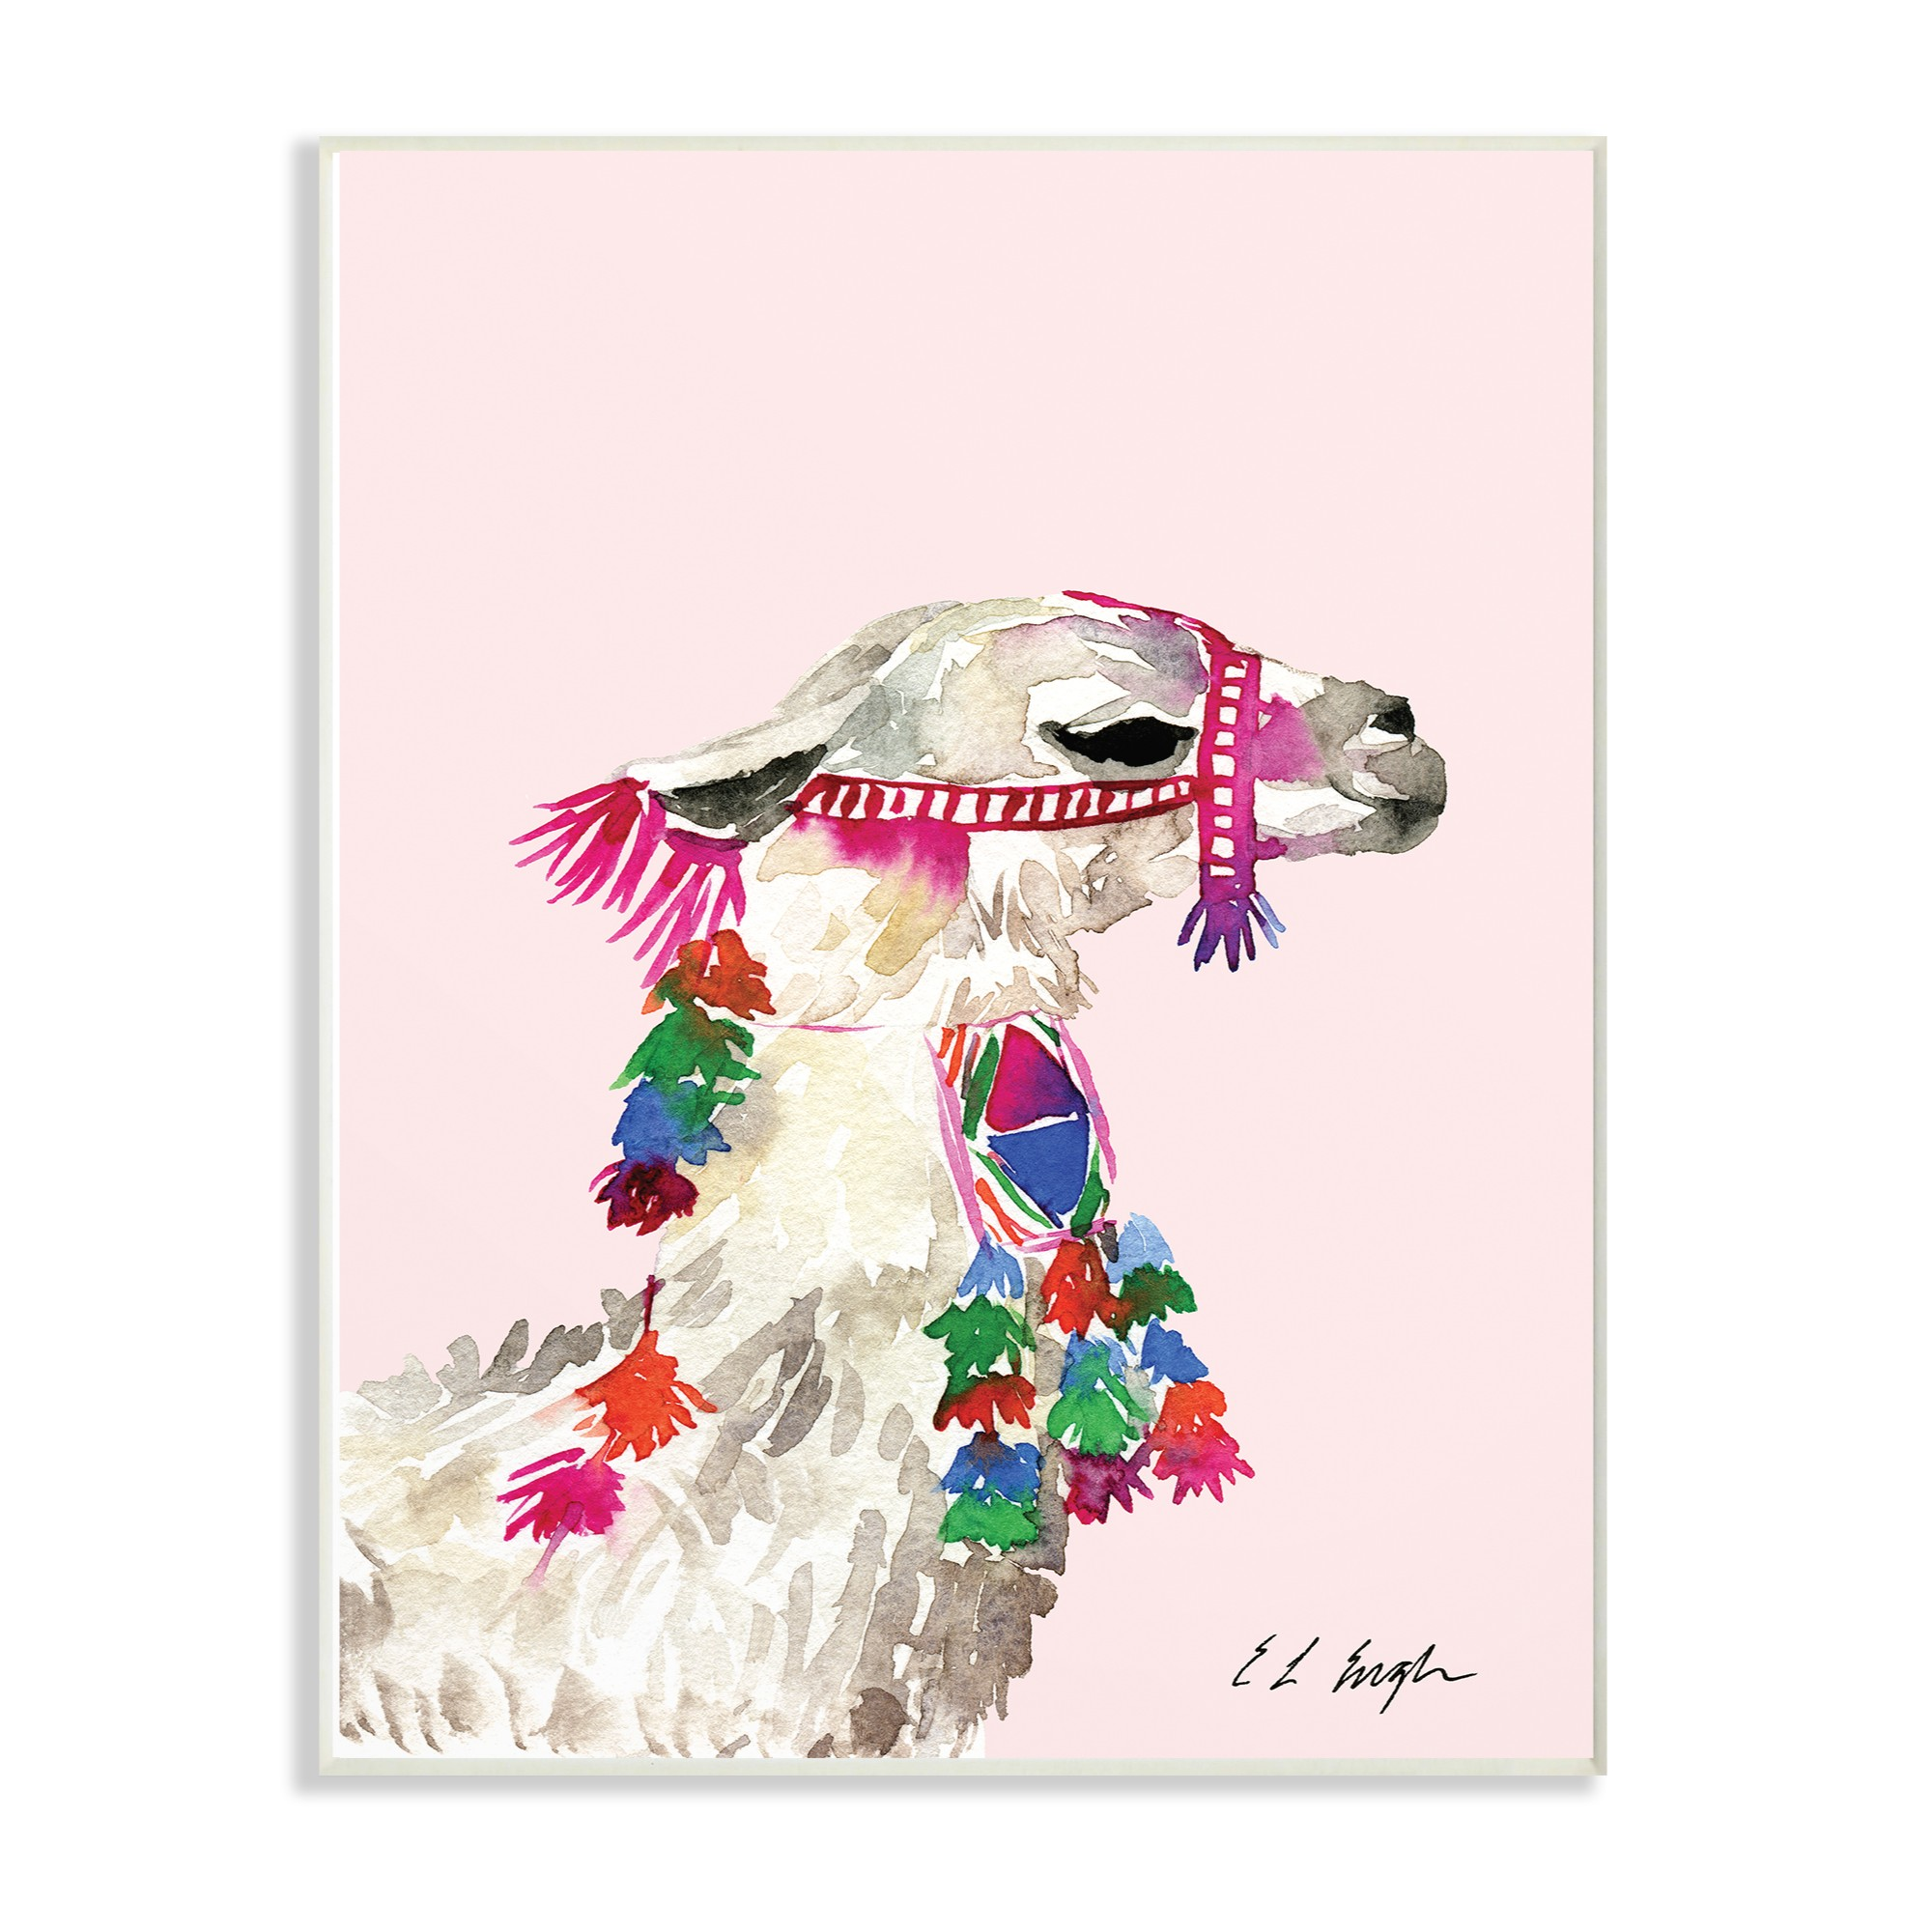 12 Home Decor Gift Ideas From Walmart: The Stupell Home Decor Collection Pink Llama Decorated